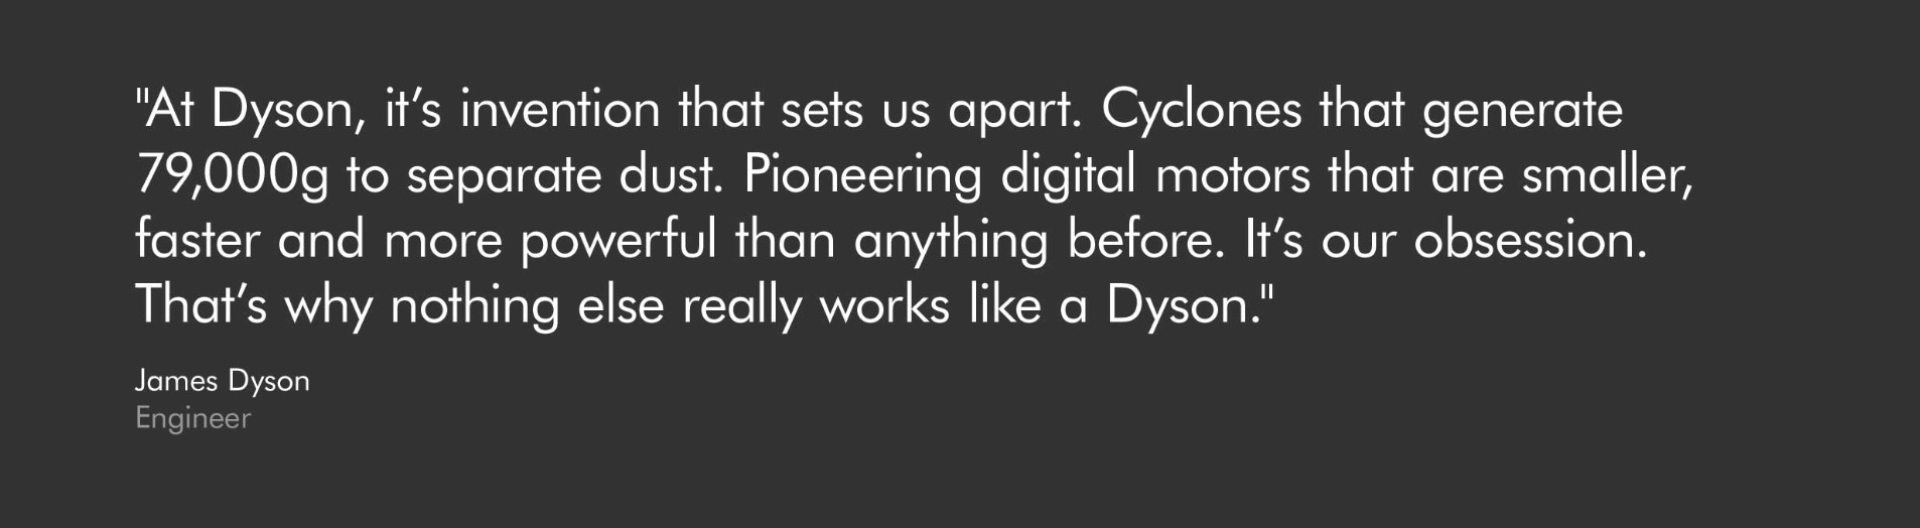 Words of James Dyson